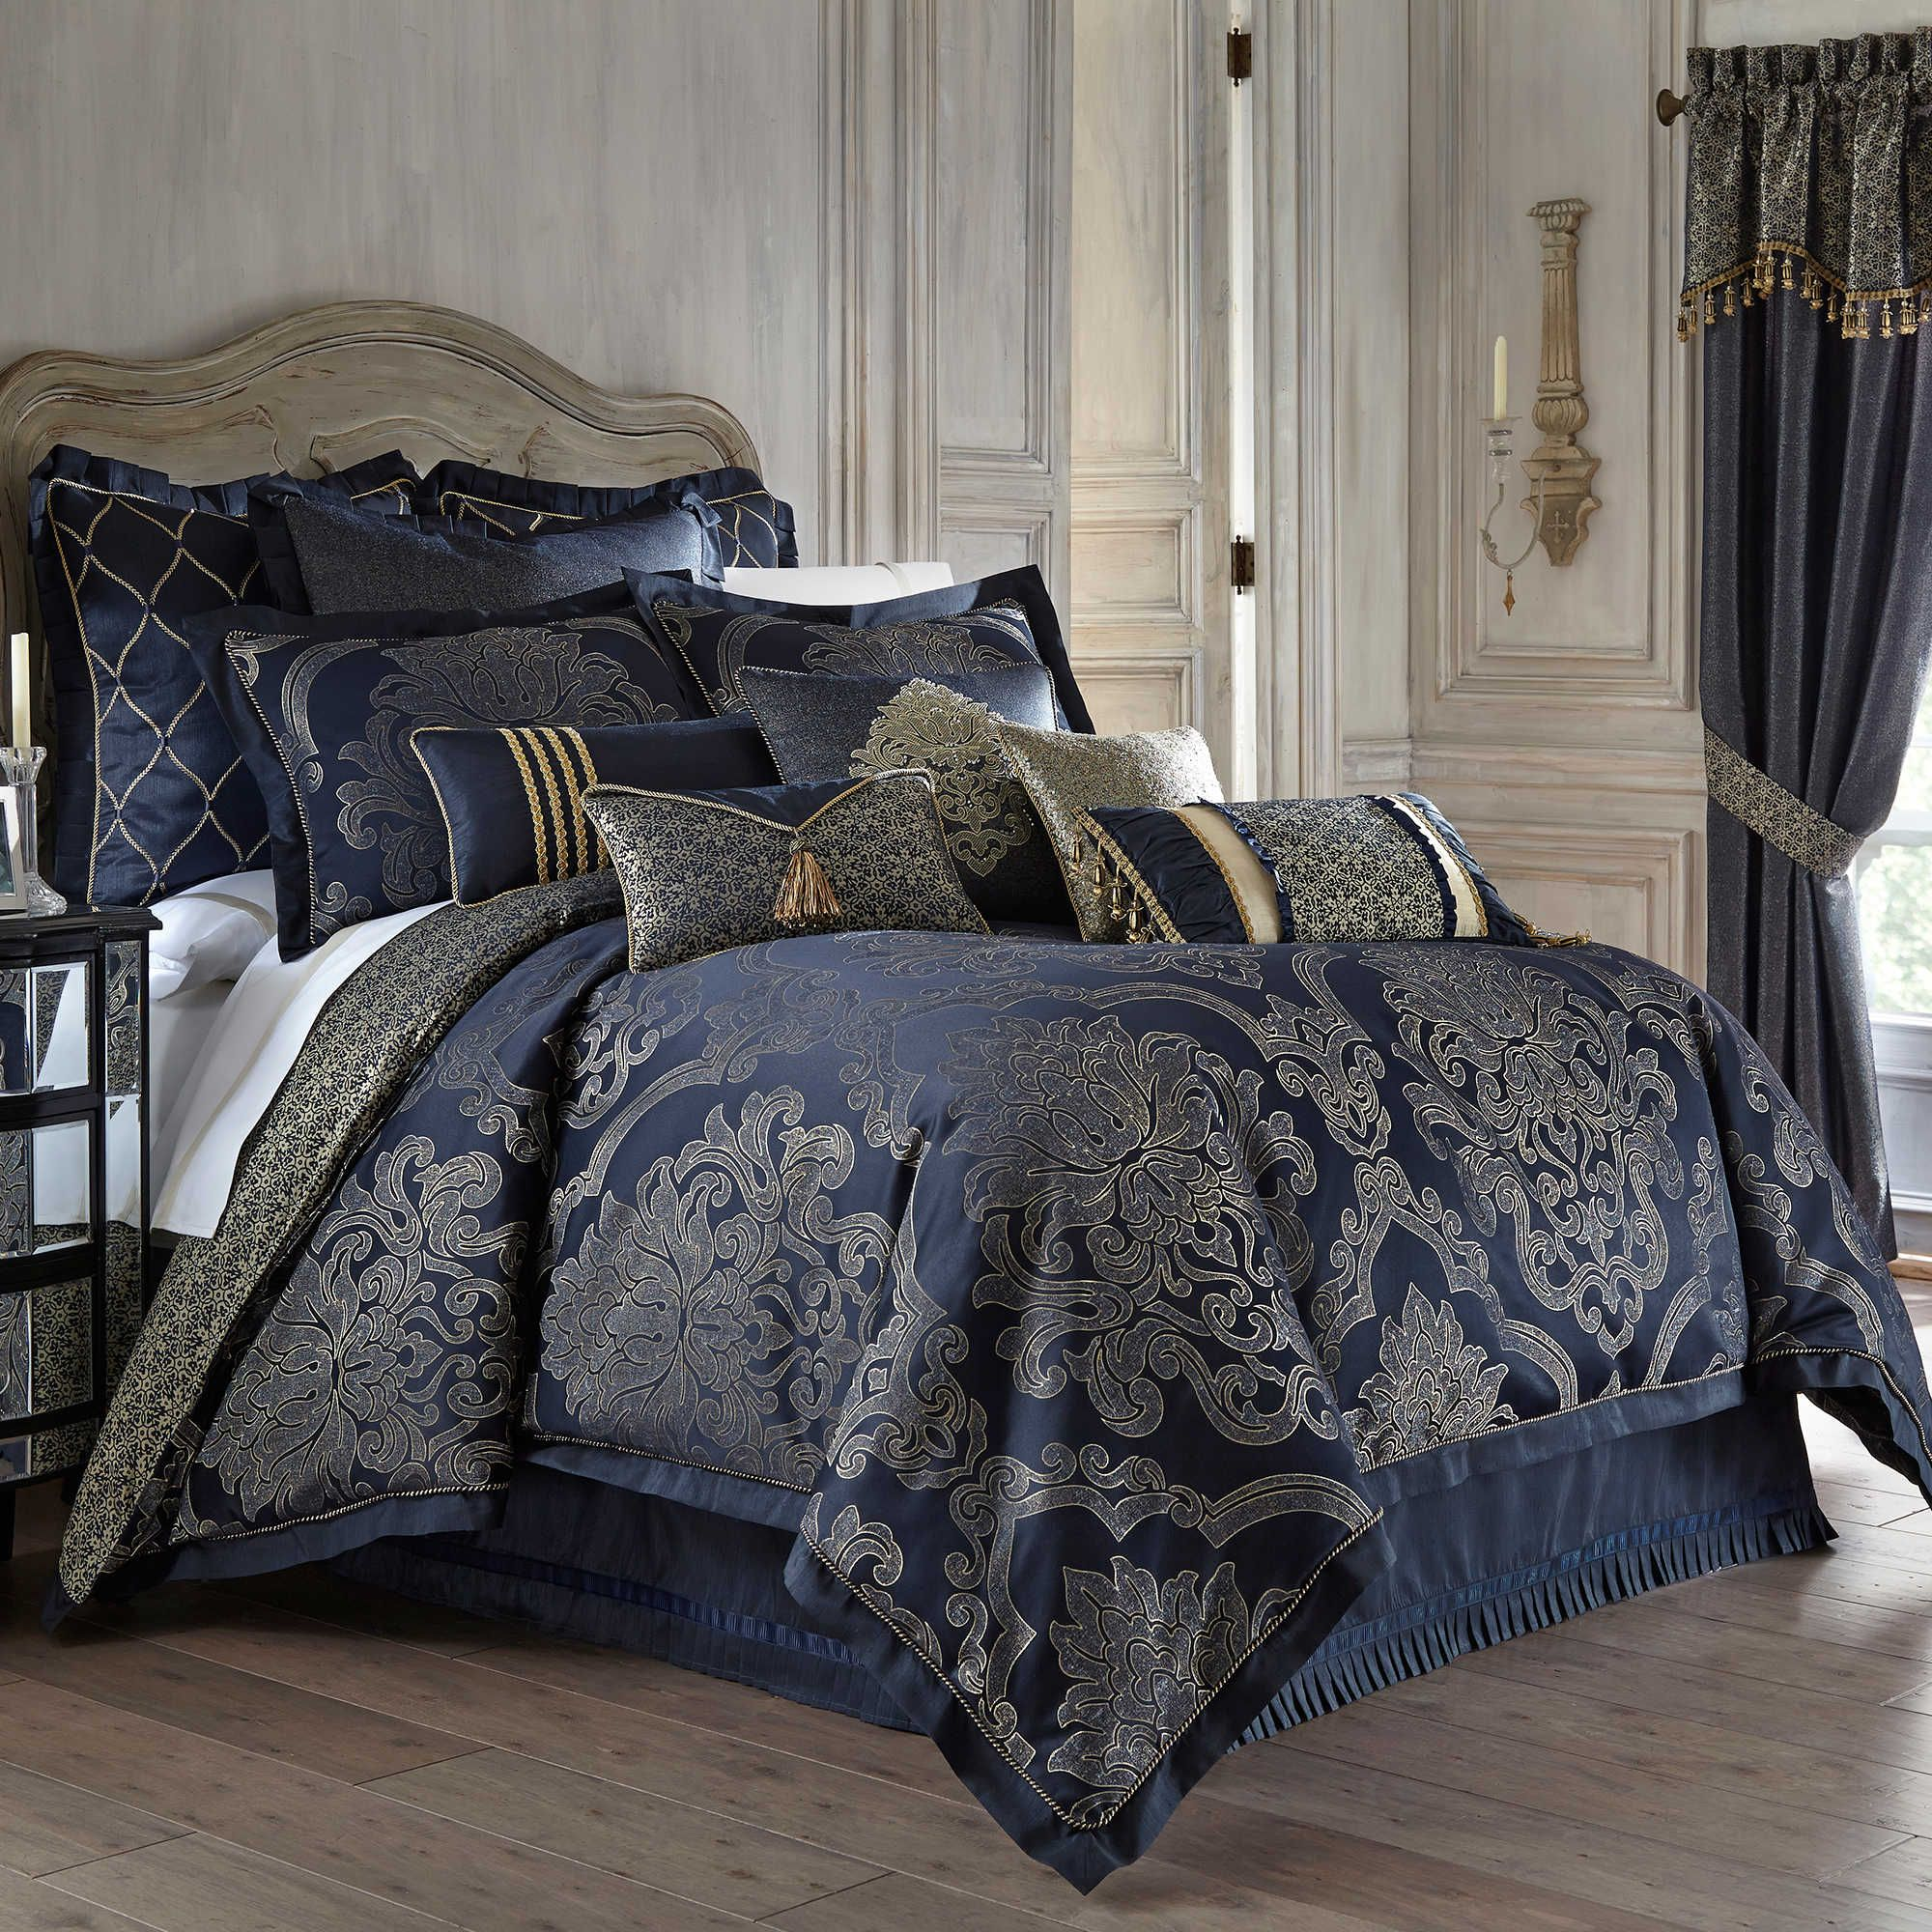 bedding comforter p waterford from by marquis gold isabella set